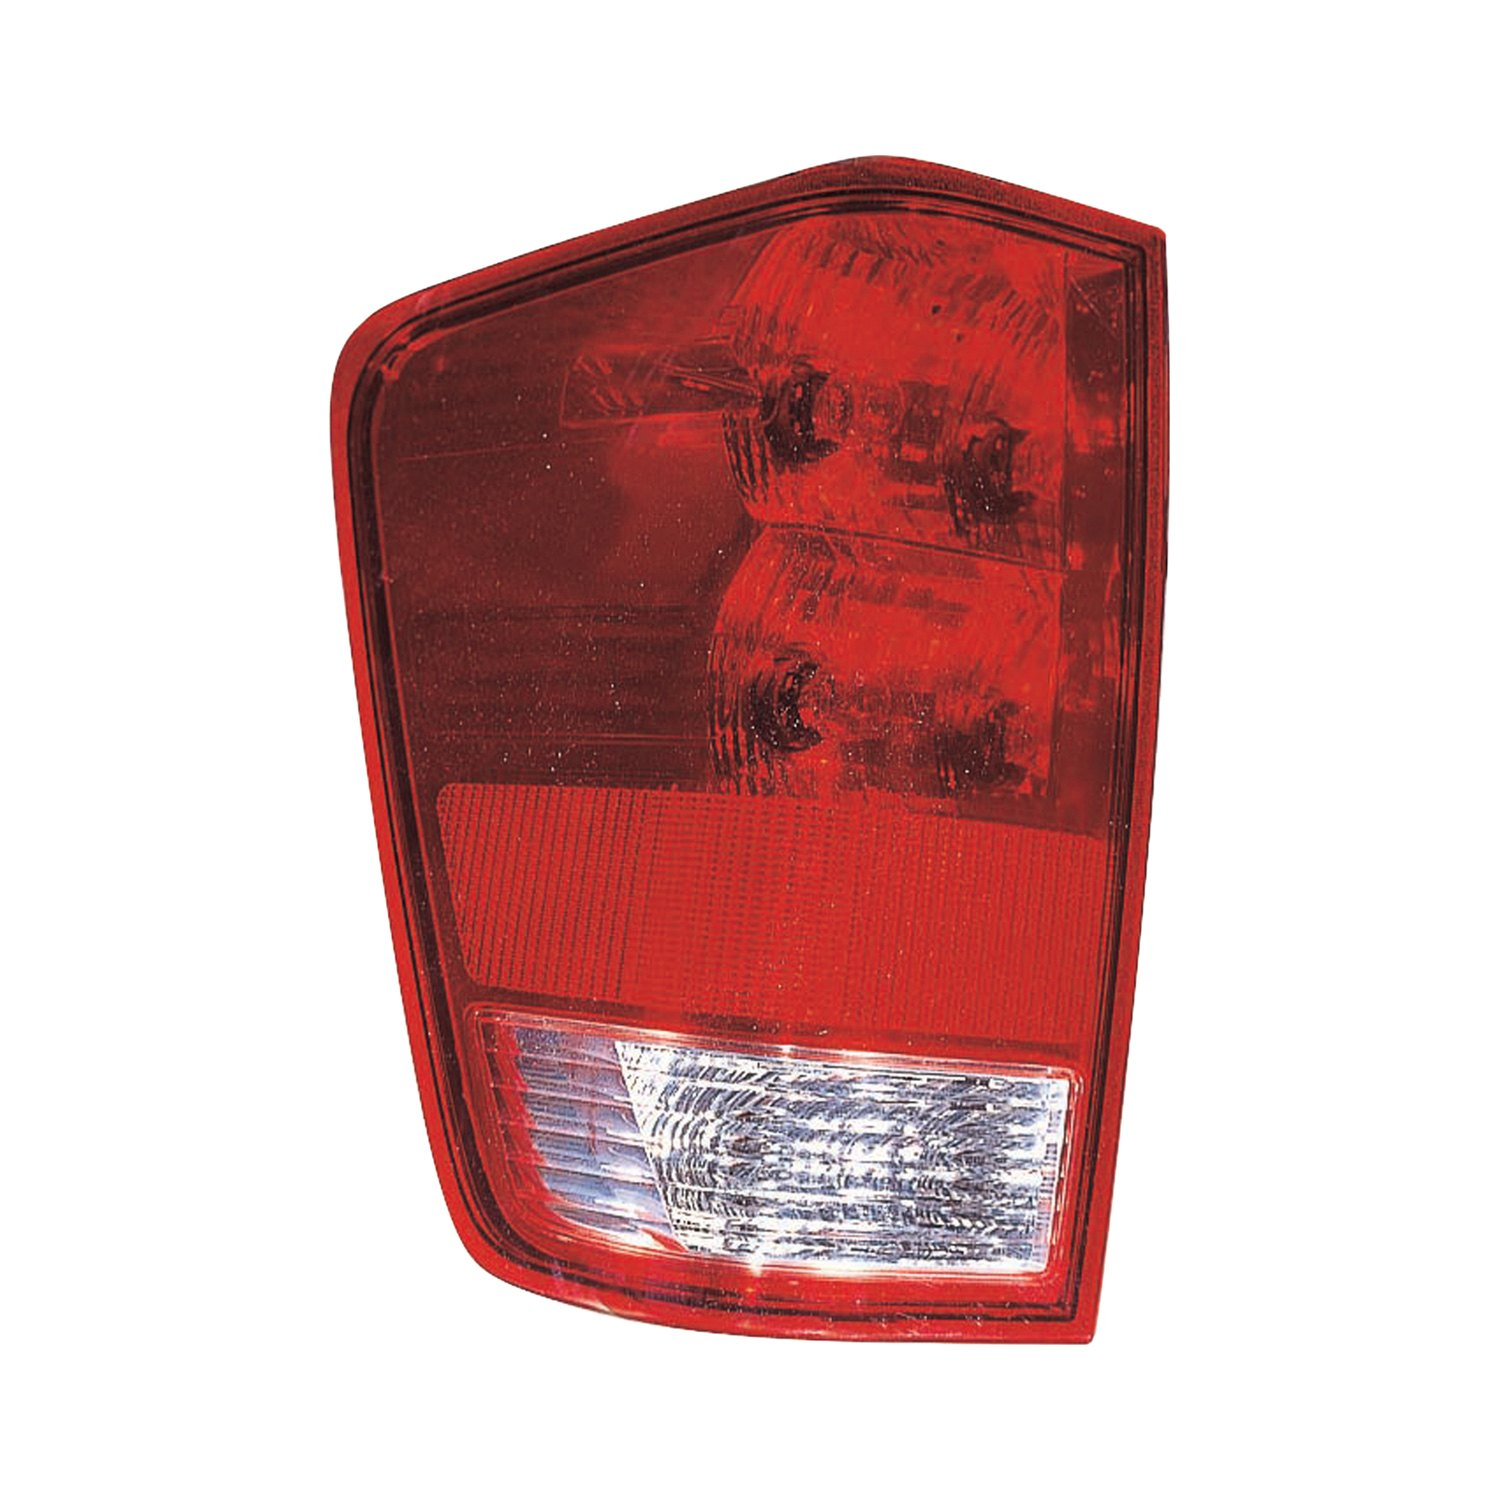 Nissan an Tail Light Wiring Diagram – Collection of ... on